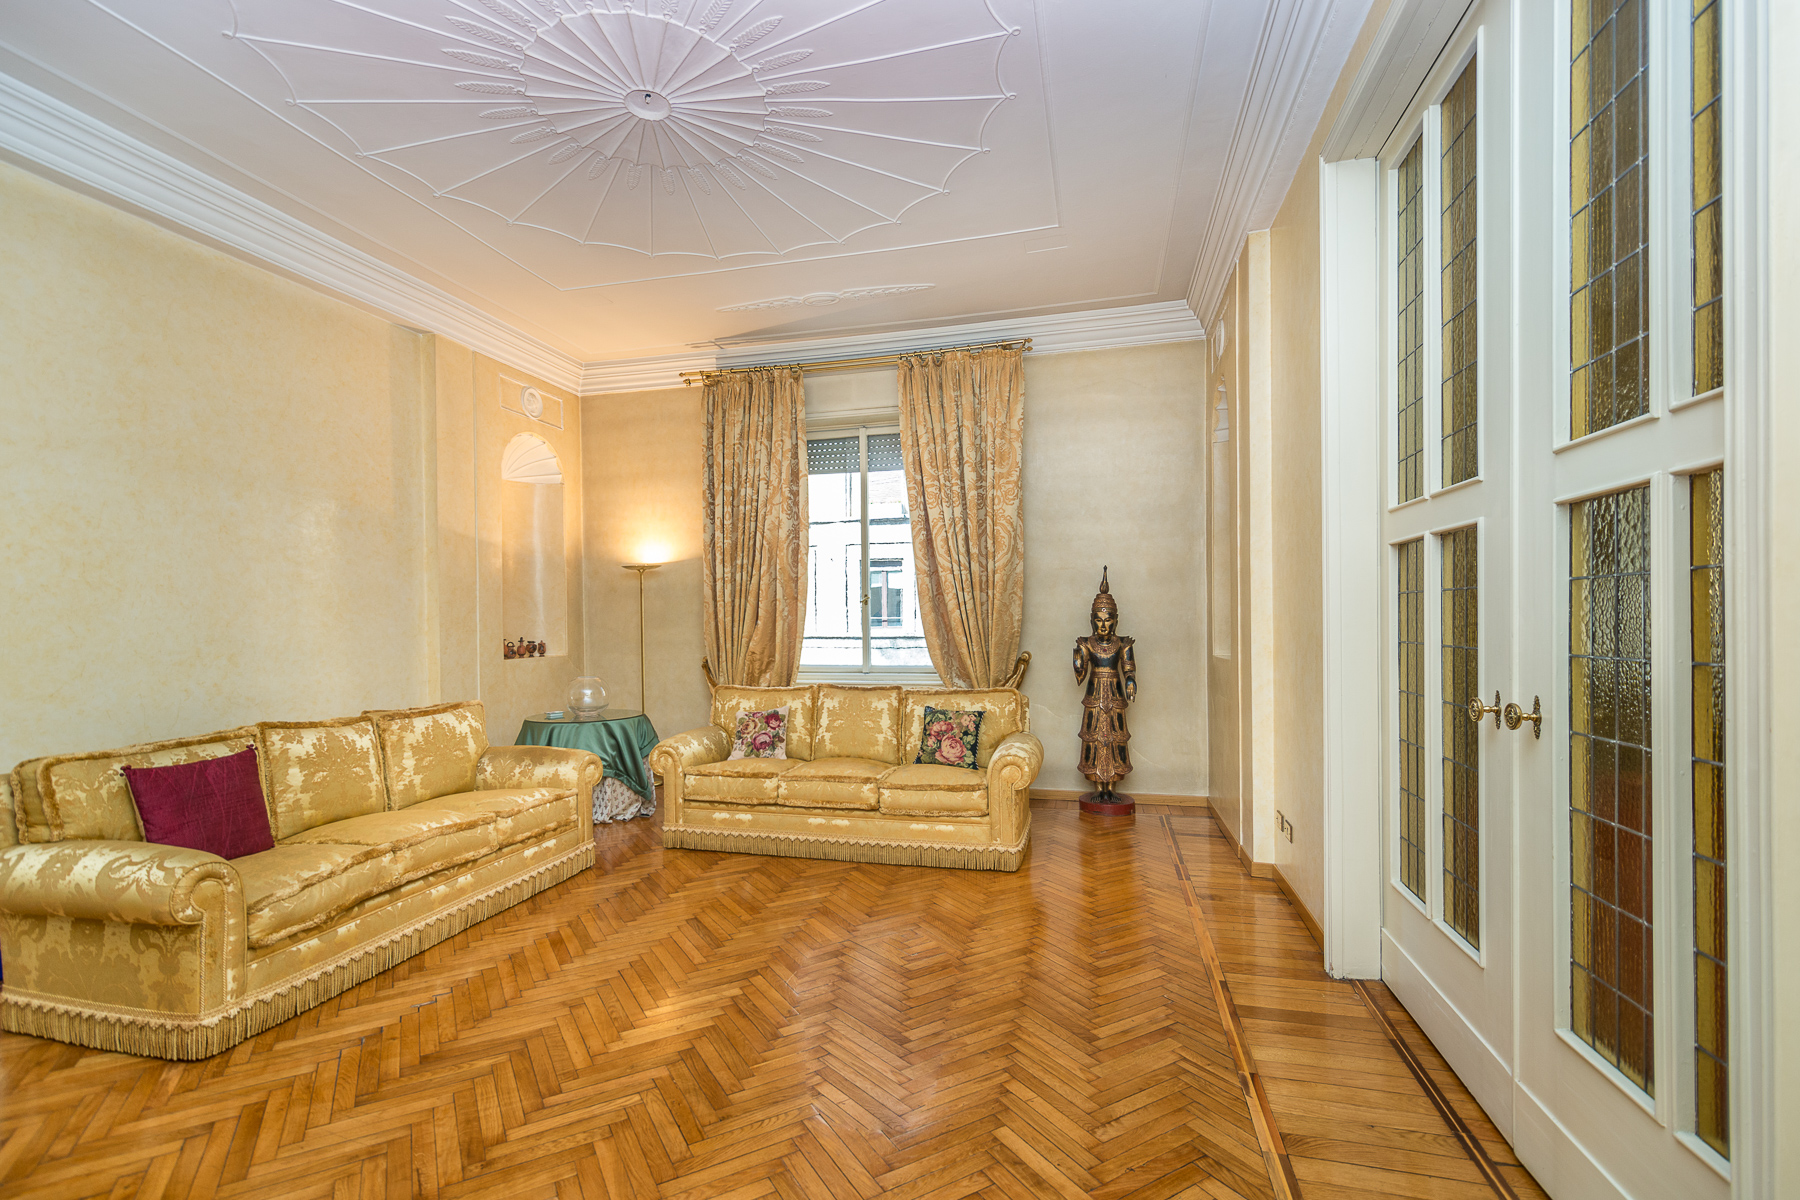 Apartment for Sale at Charming apartament in prestigious building Via Appiani Milano, Milan, 20121 Italy